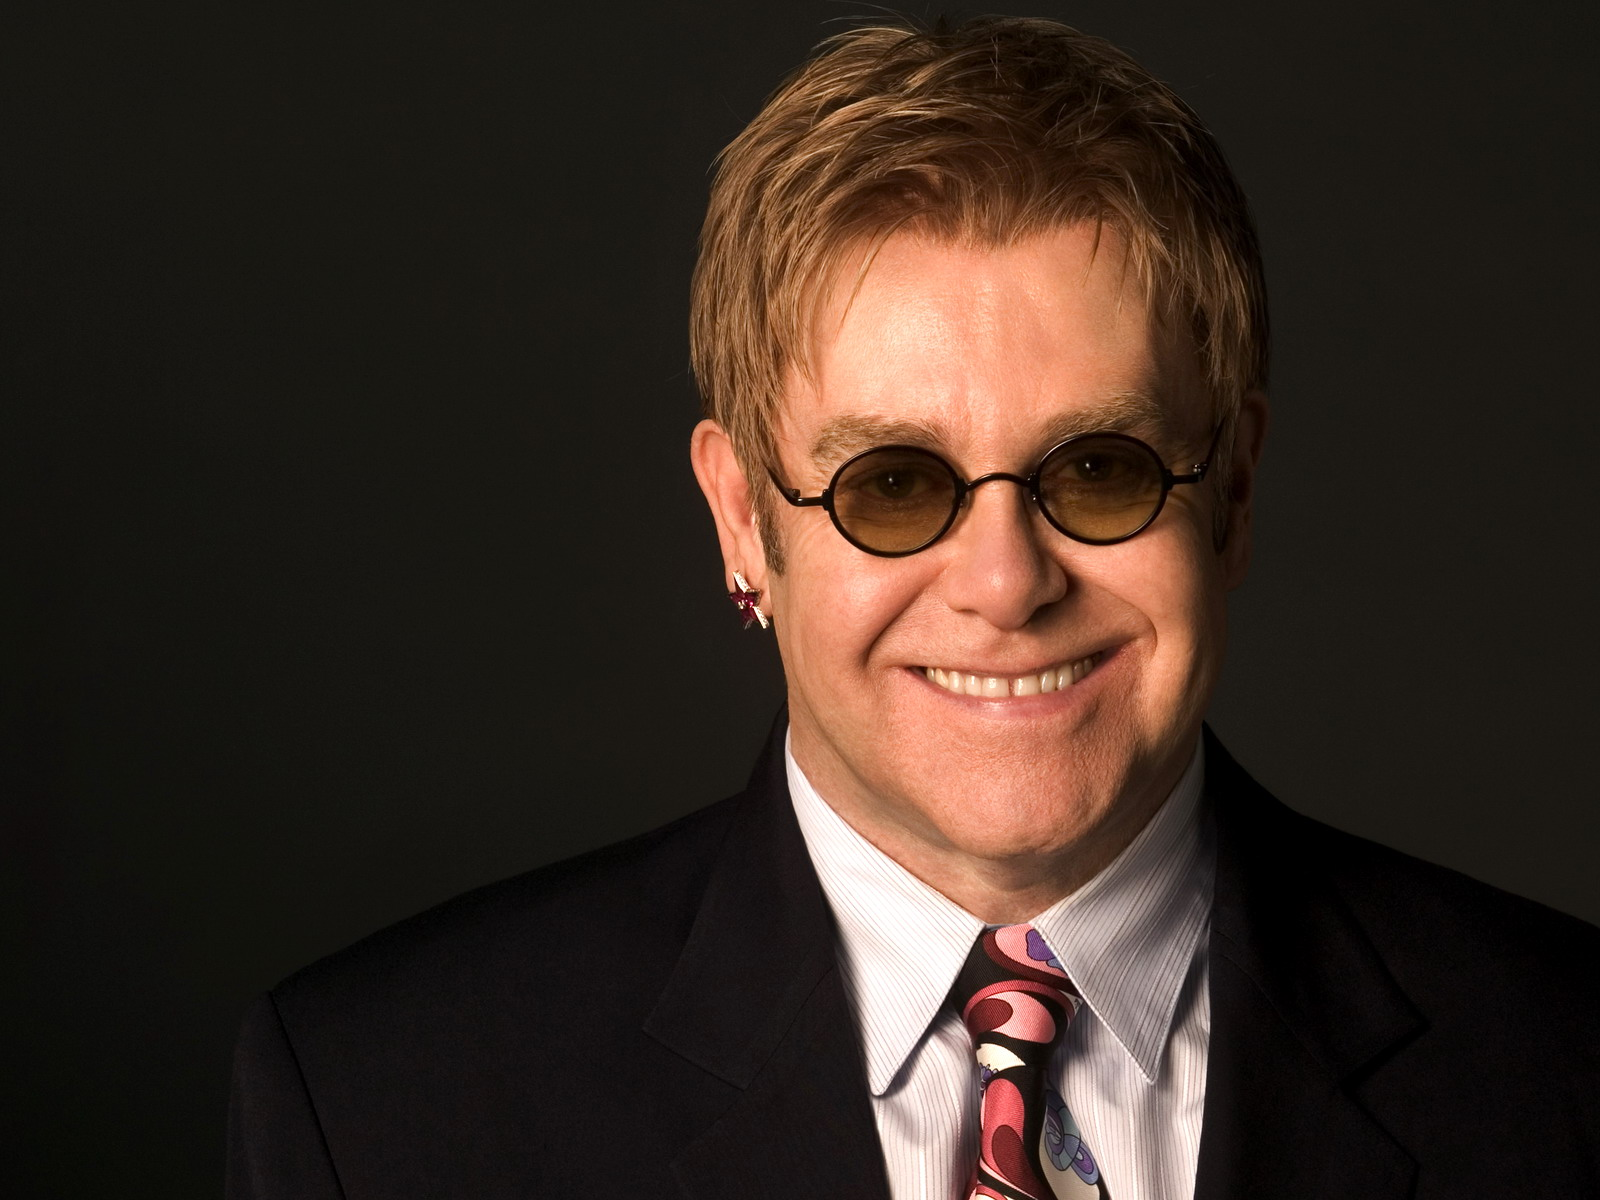 elton john smile computer wallpaper 60606